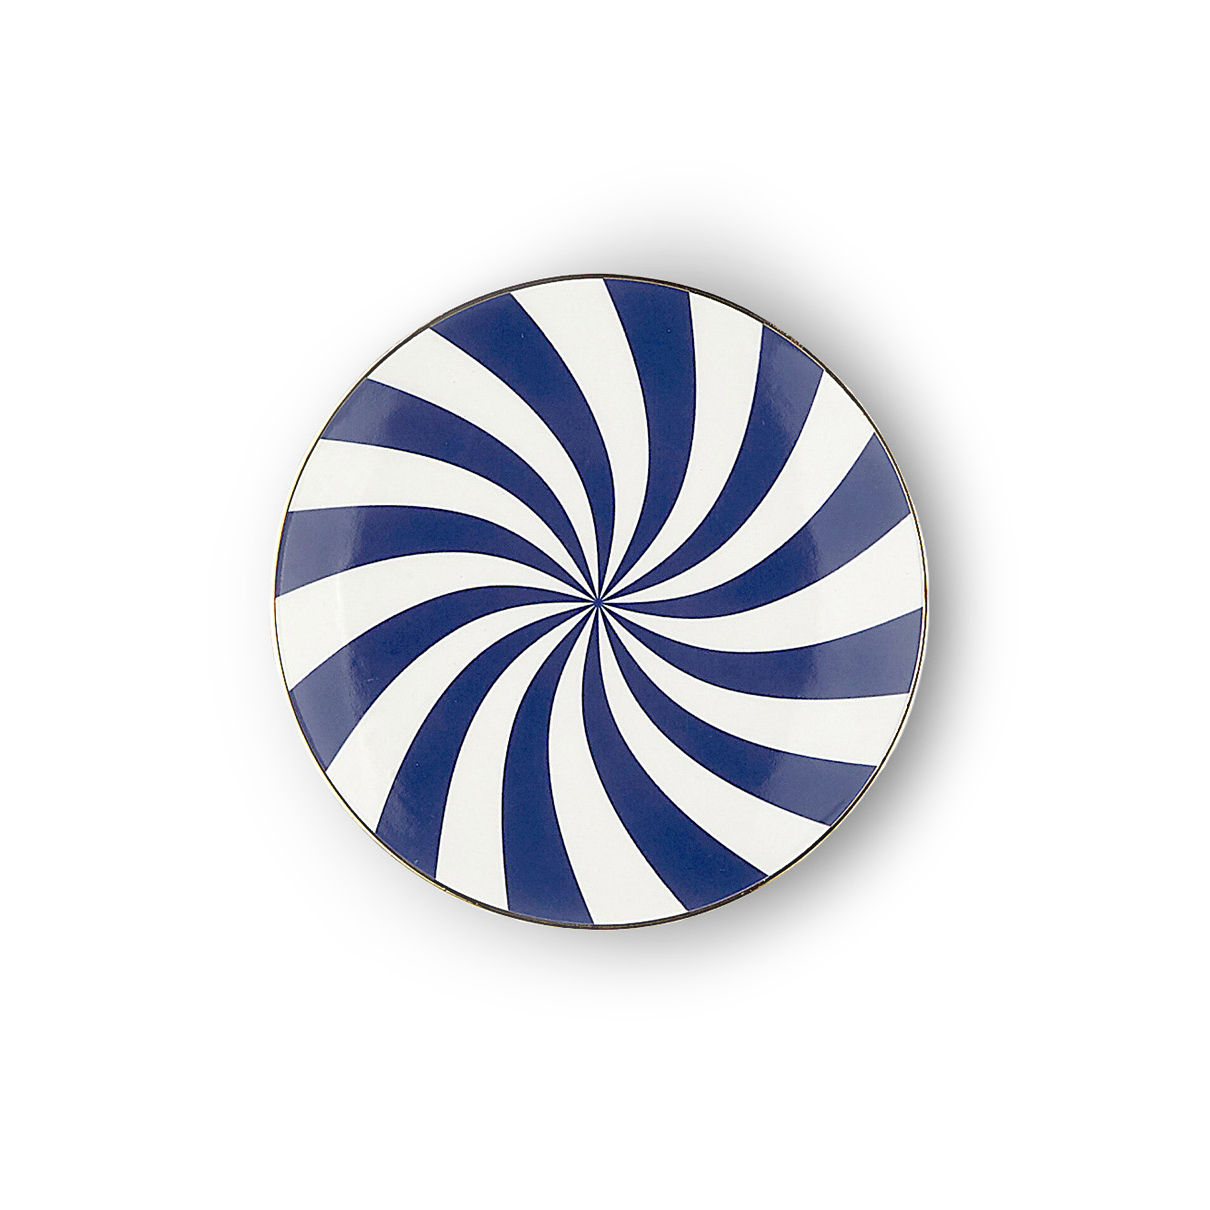 Tableware - Plates - Ruota Petit fours plates - / Ø 12 cm by Bitossi Home - Spiral - China